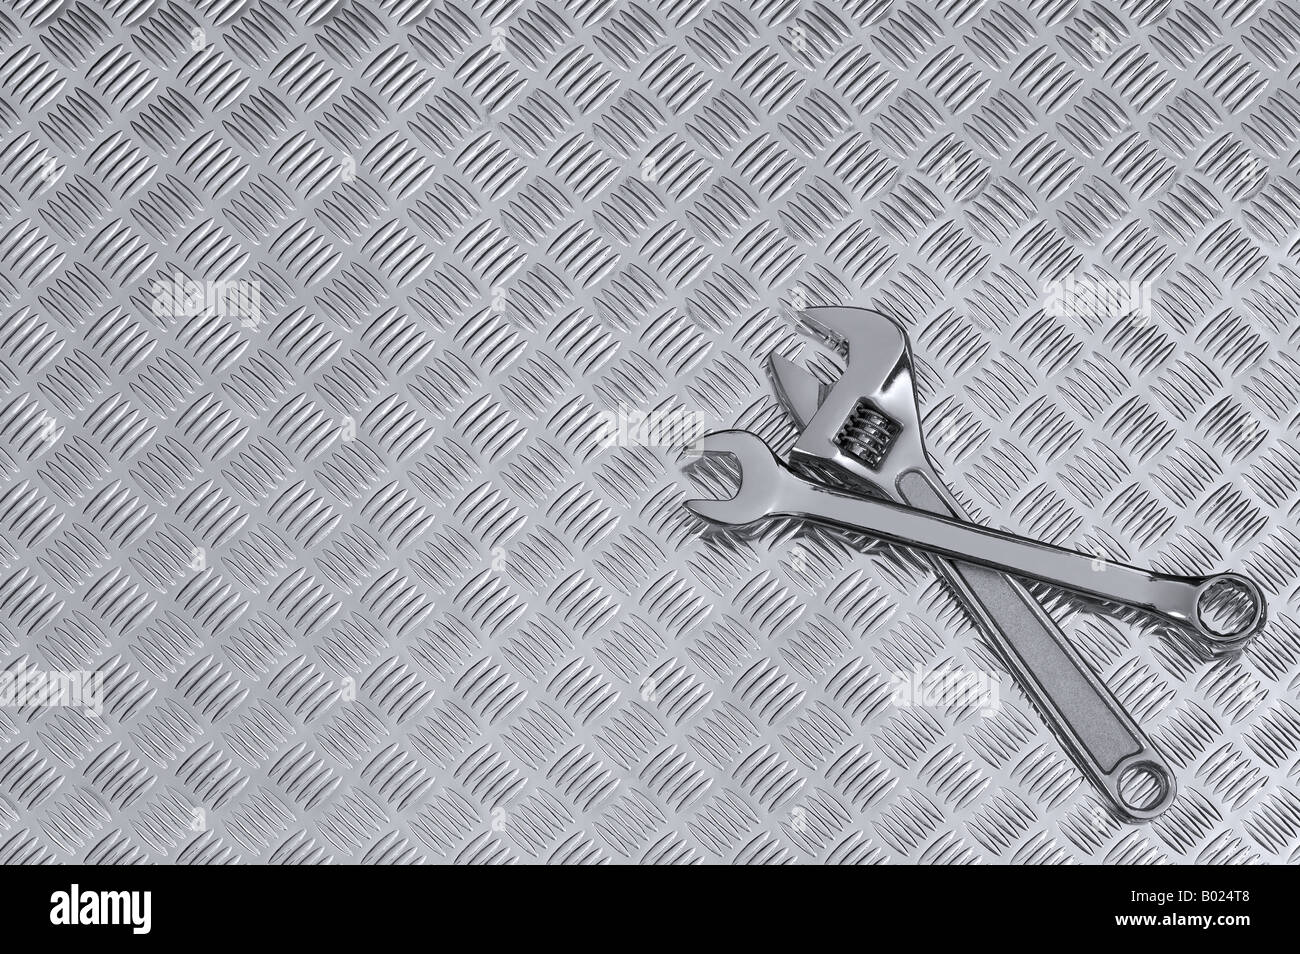 Mechanical background image of two spanners on a checkerplate workbench - Stock Image